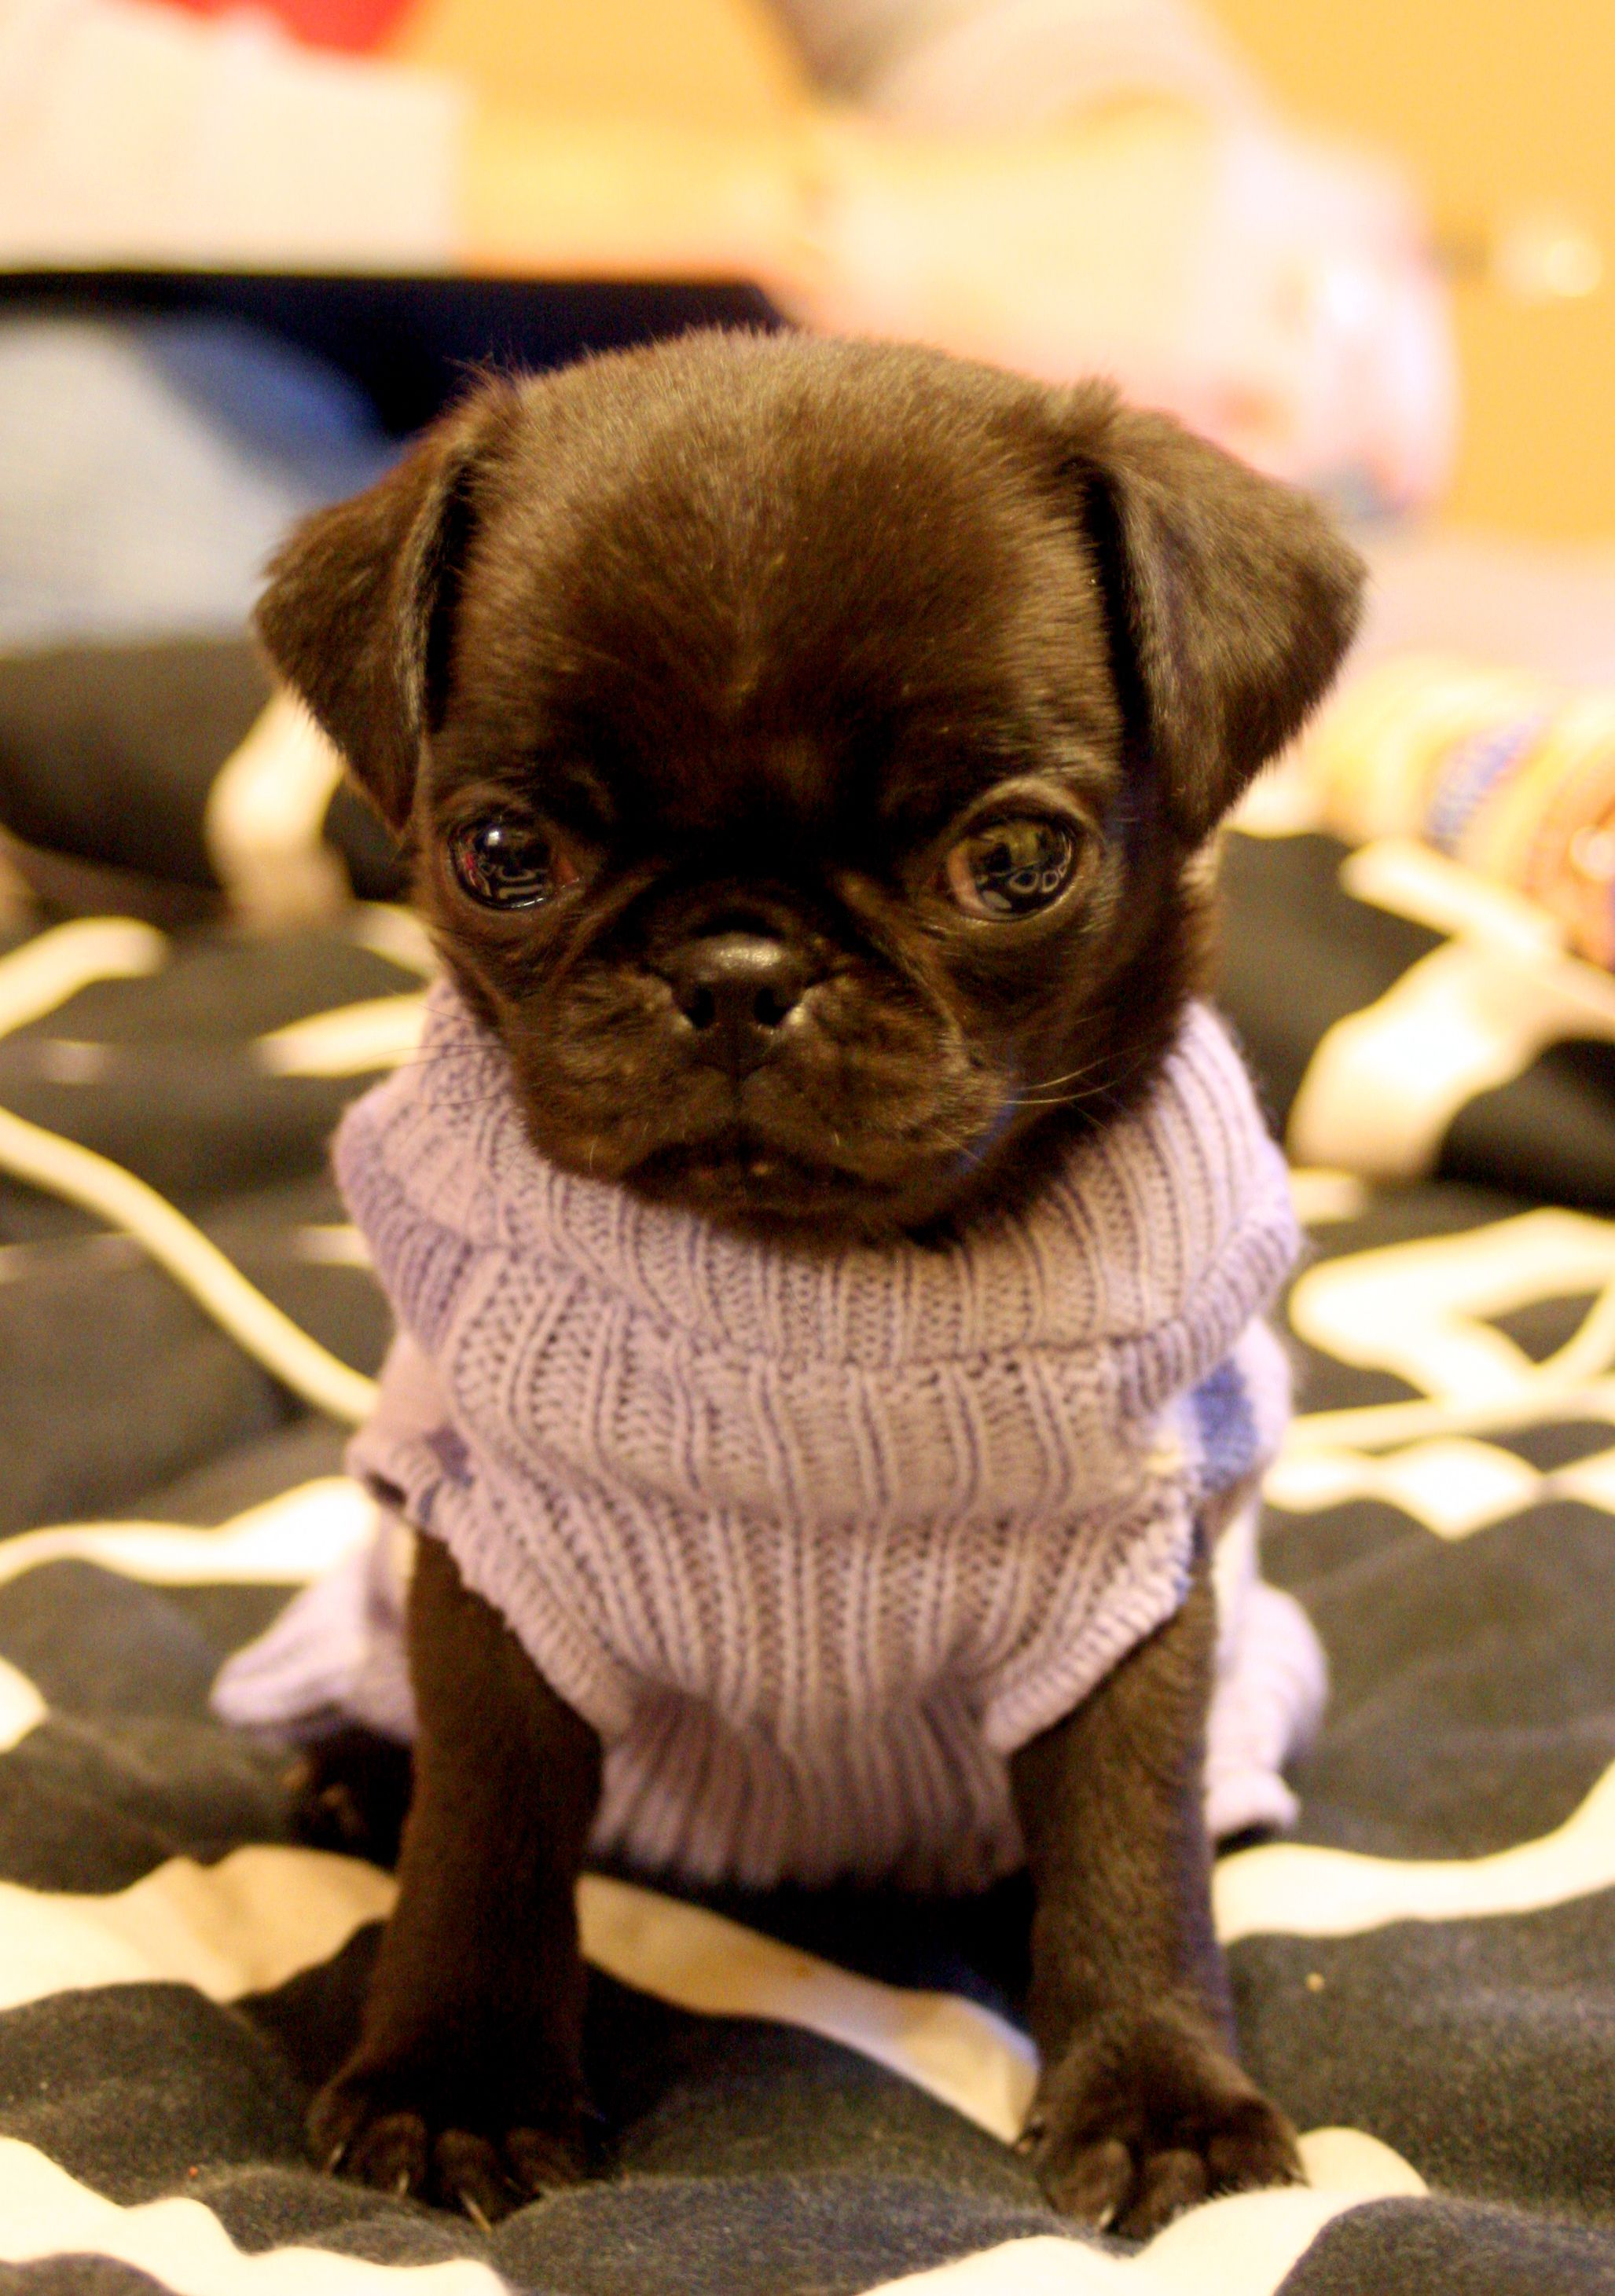 Baby Girl Pug In A Sweater Baby Pugs Cute Animals Cute Pugs